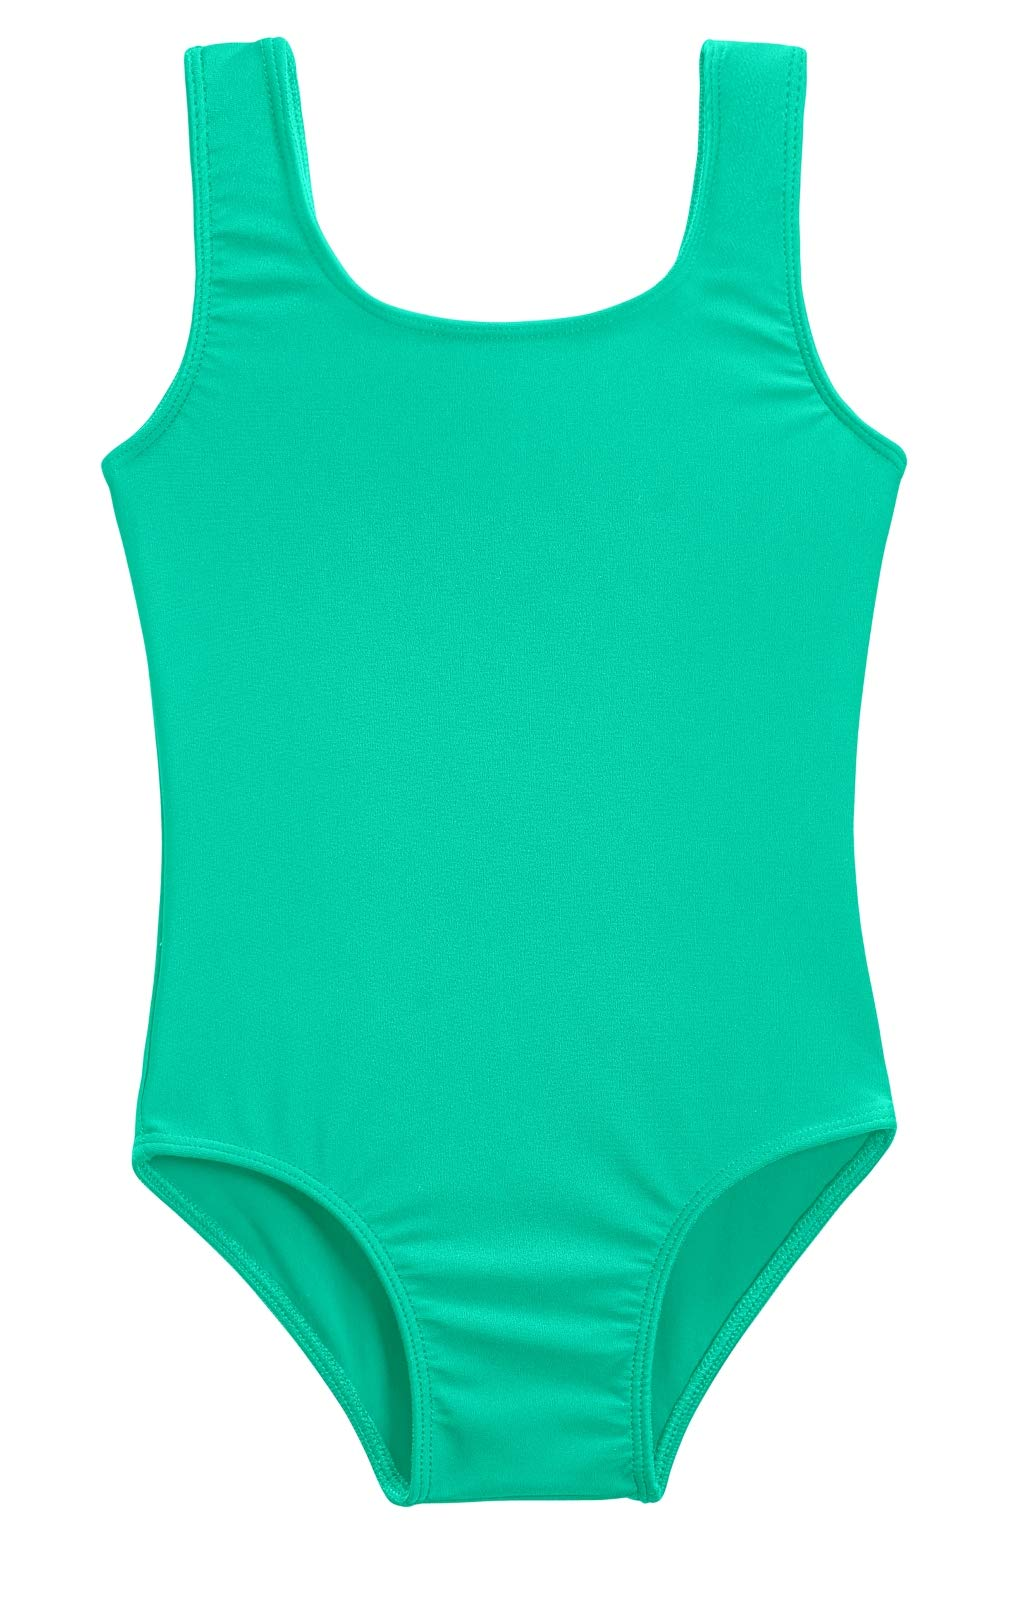 City Threads Girls' One Piece Swimming Suit with Sun Protection SPF for Beach Pool or Play Swim Suit Rash Guard Bottoms Briefs, Aqua, 2T